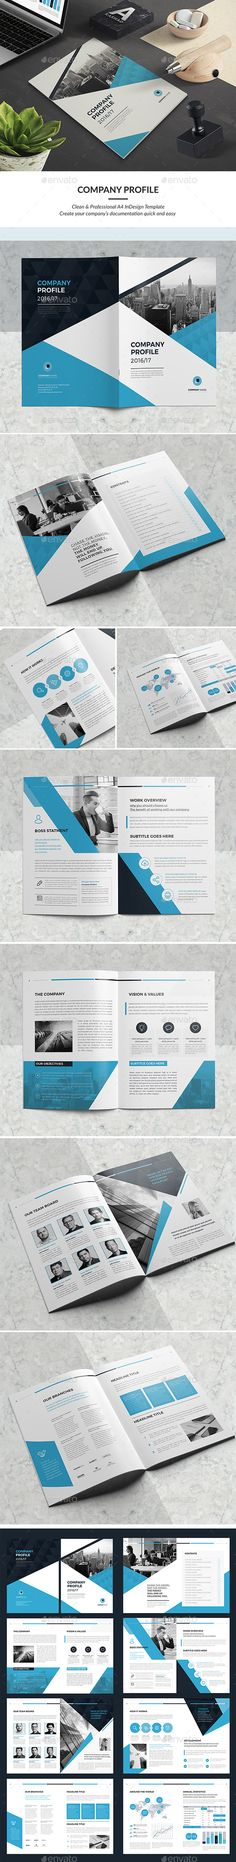 Company Profile Template InDesign INDD Company Profile Design - corporate profile template